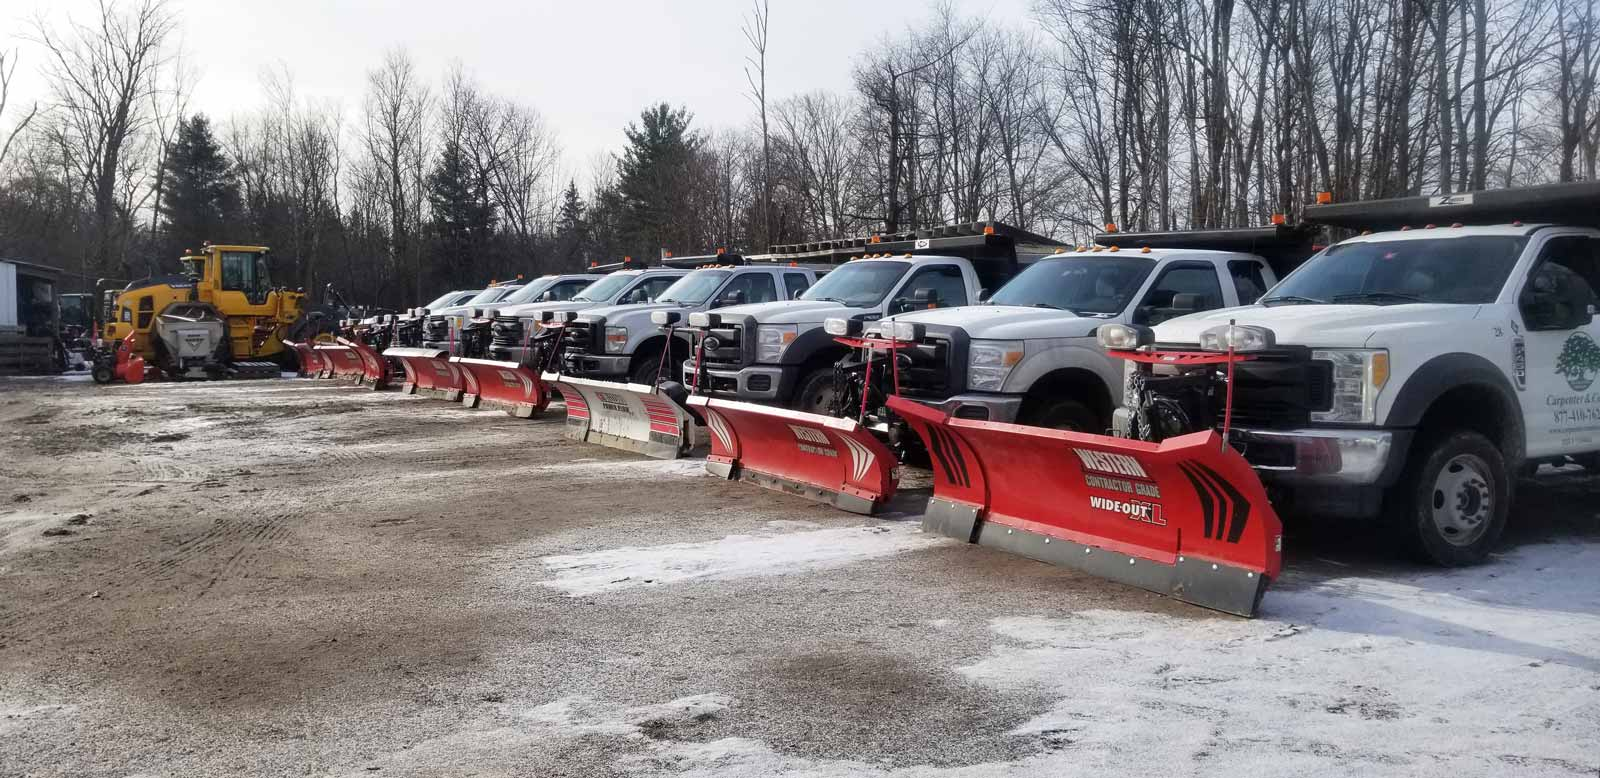 Fleet of snowplow trucks